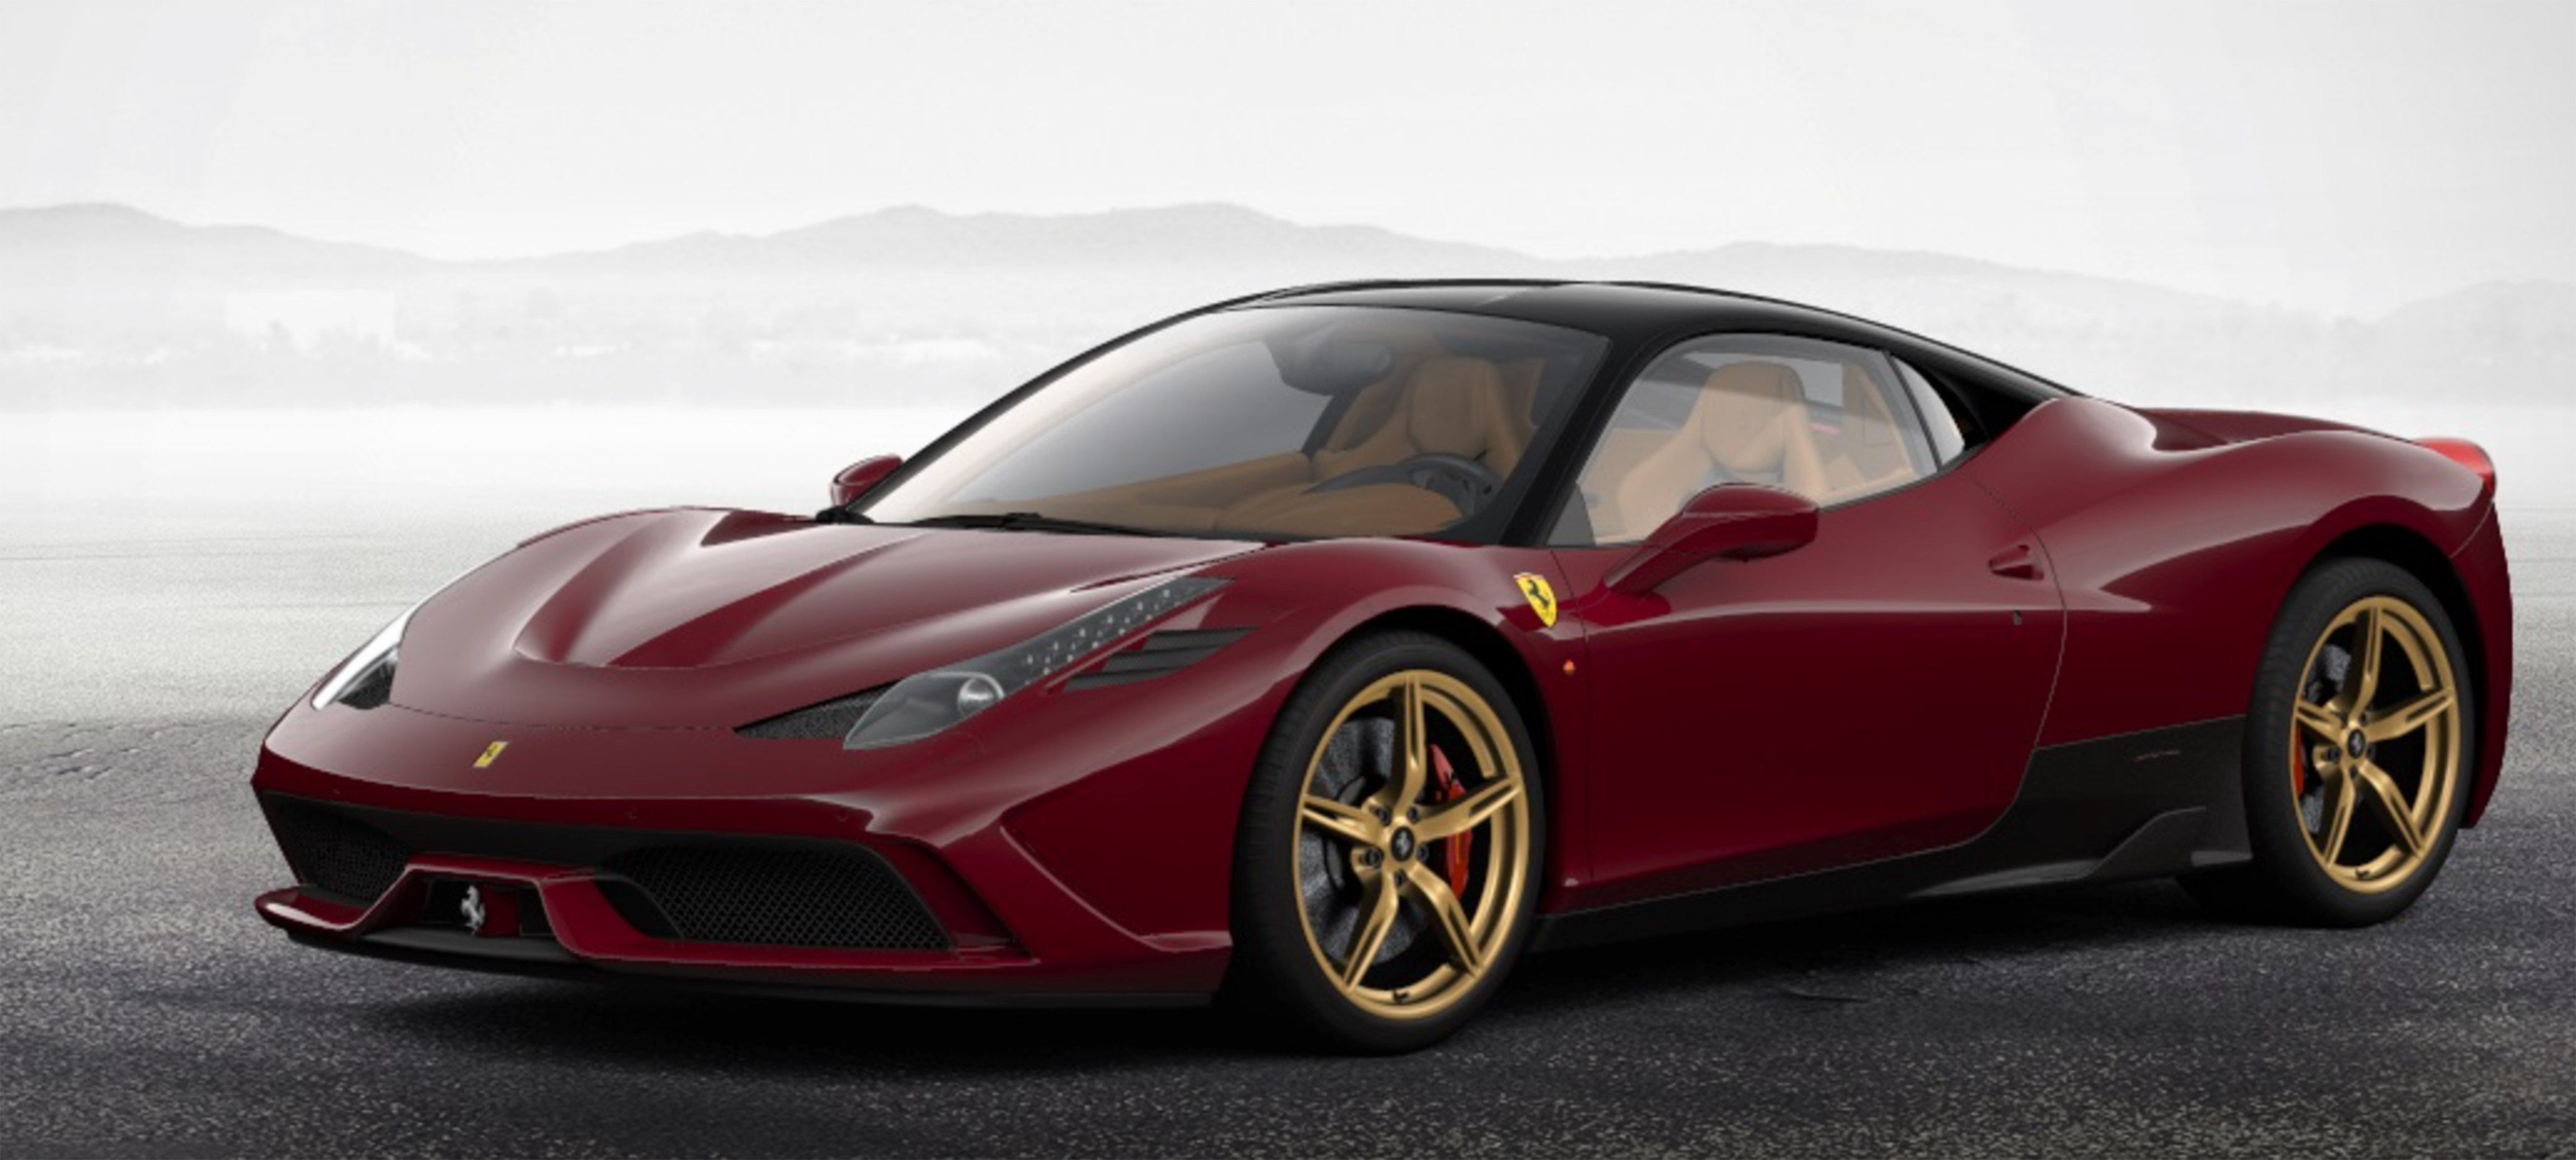 This Is How I Want My 458 Speciale Rosso Mugello With